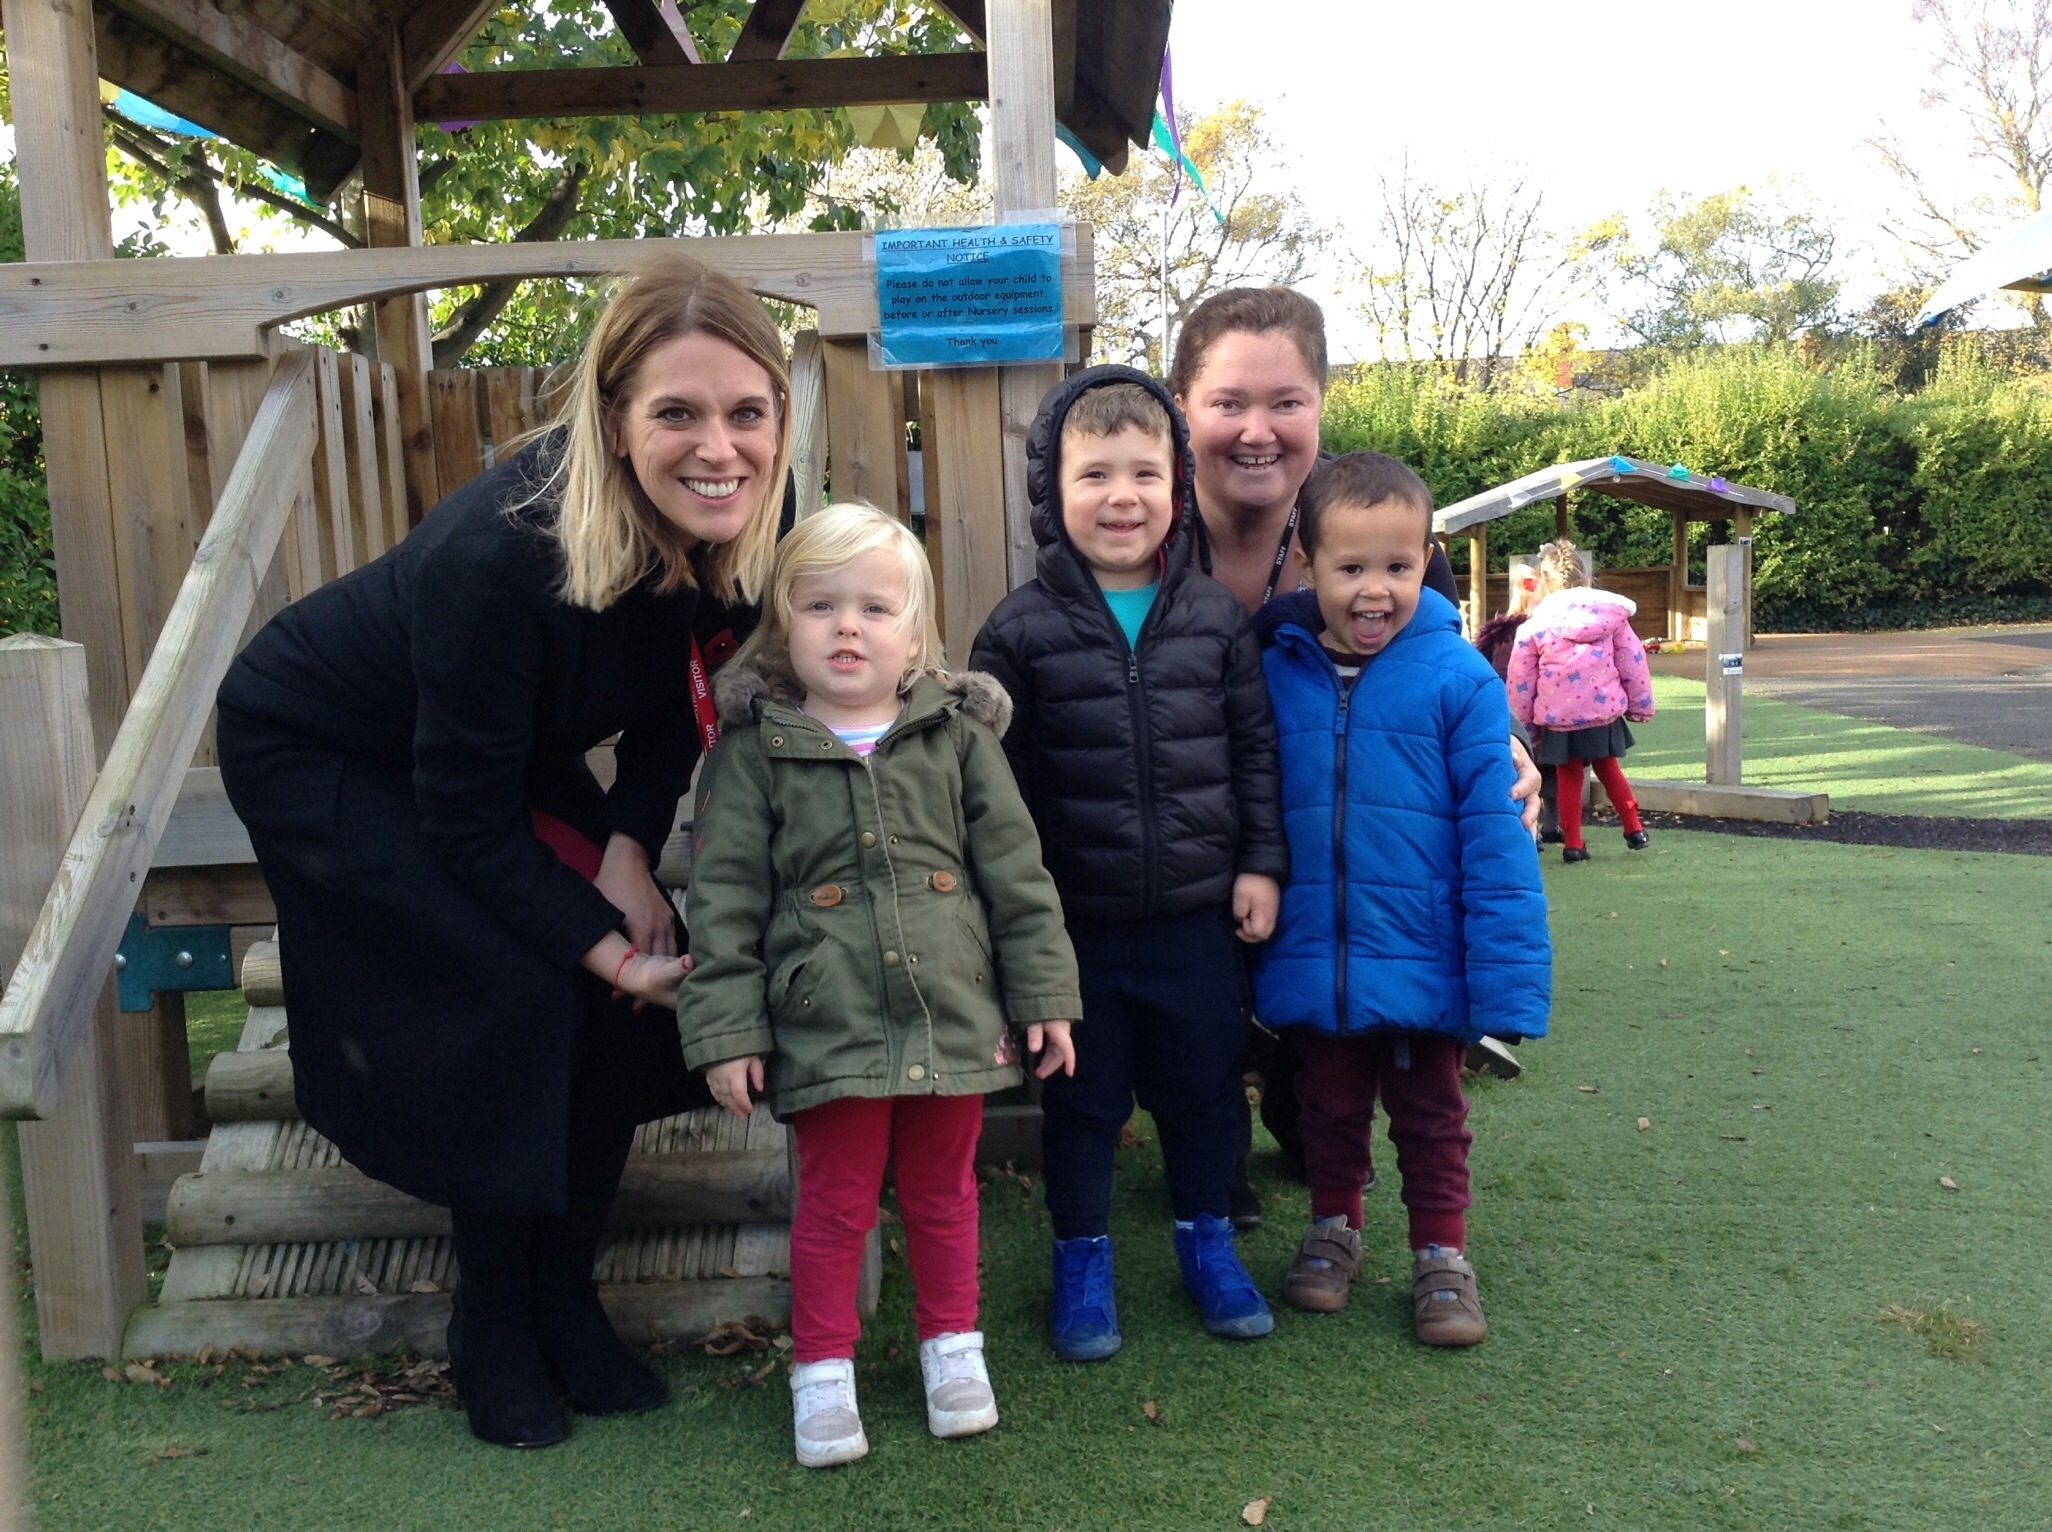 Laura Smith, MP for Crewe and Nantiwich, with head teacher Elizabeth Hulse and children from Westminster Nursery School